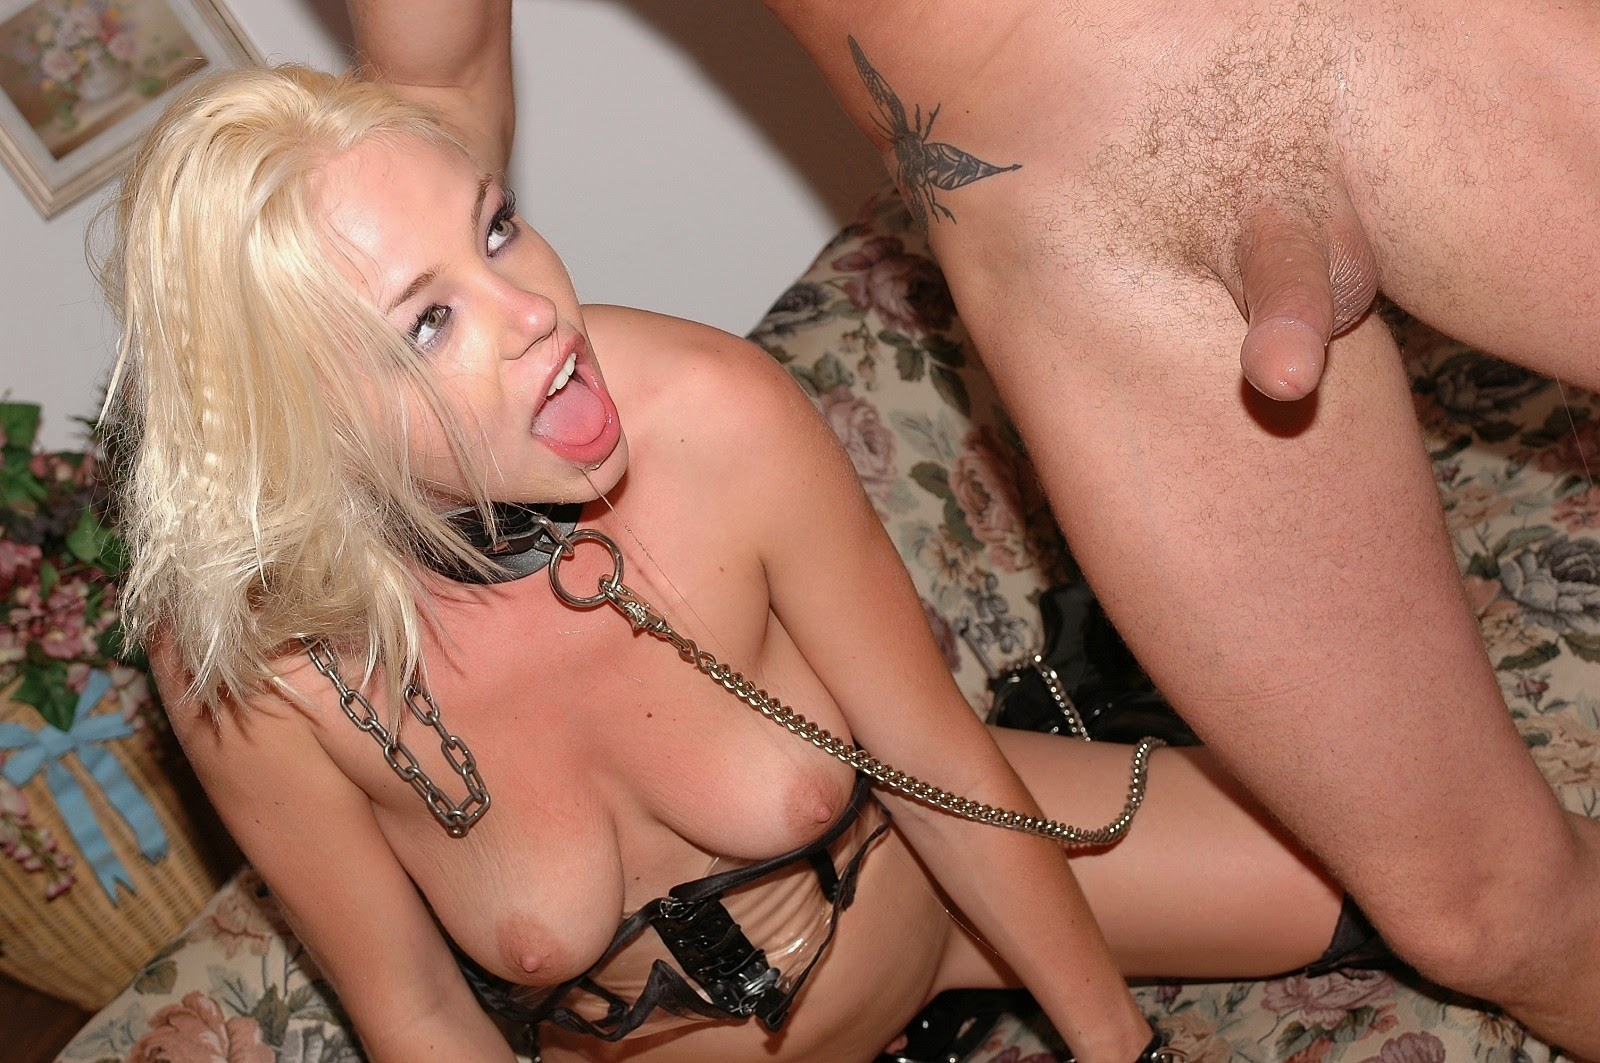 Collar slut about to suck cock